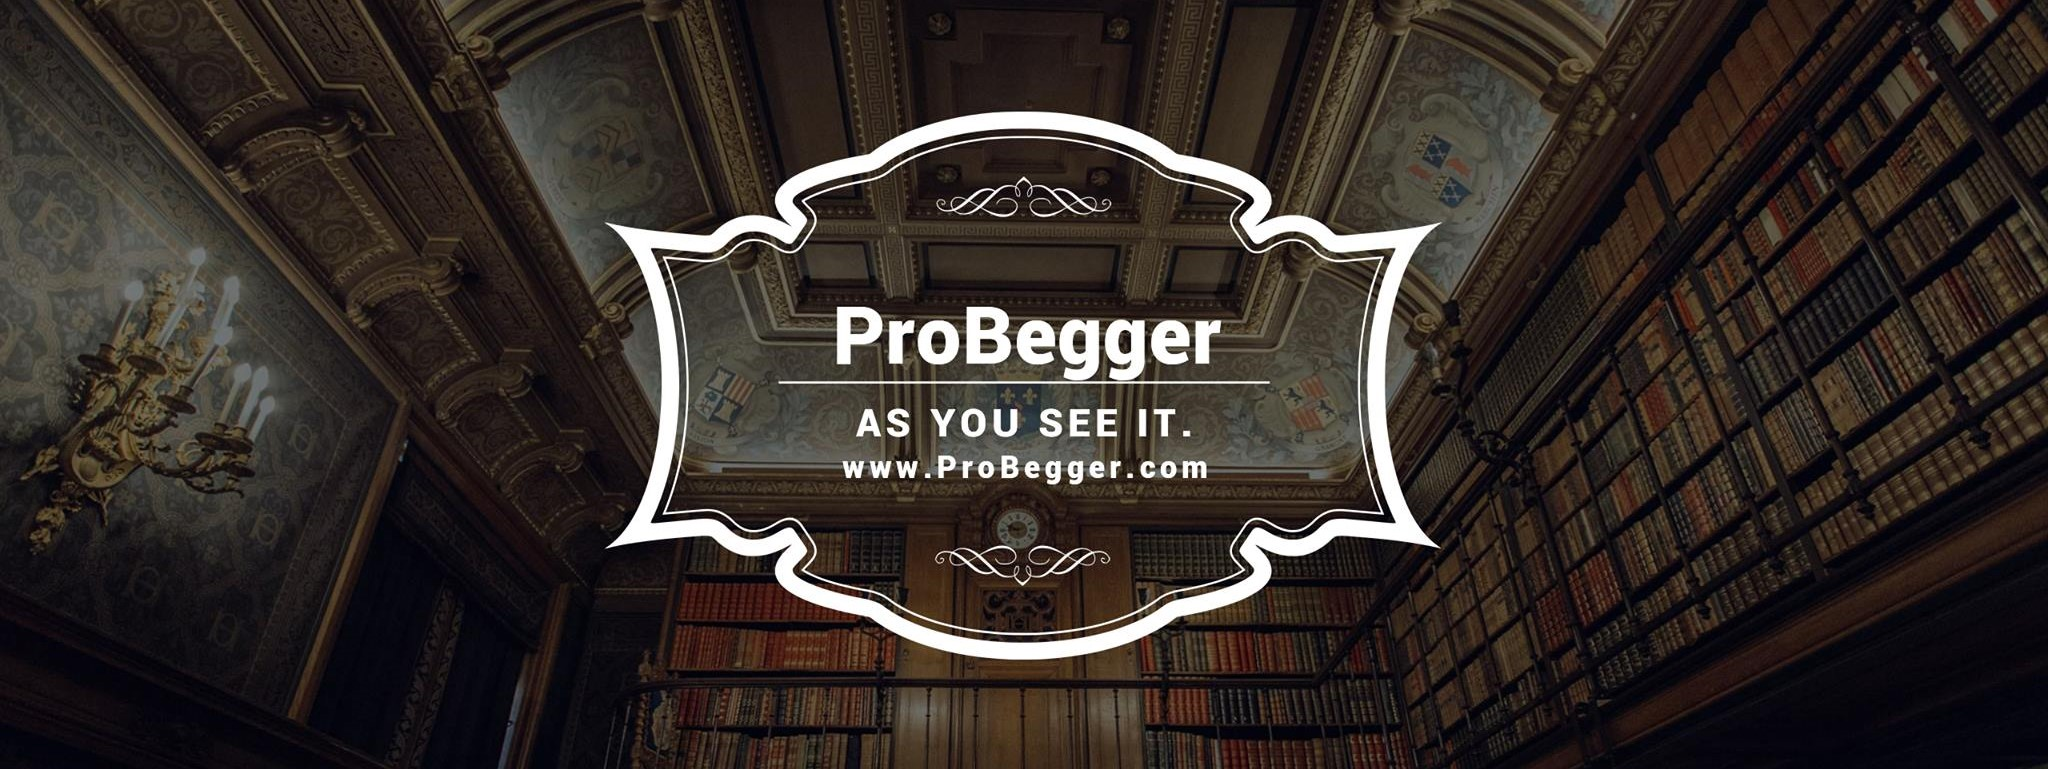 Trade Links on www.darcylee.com for links to www.probegger.com on ur website